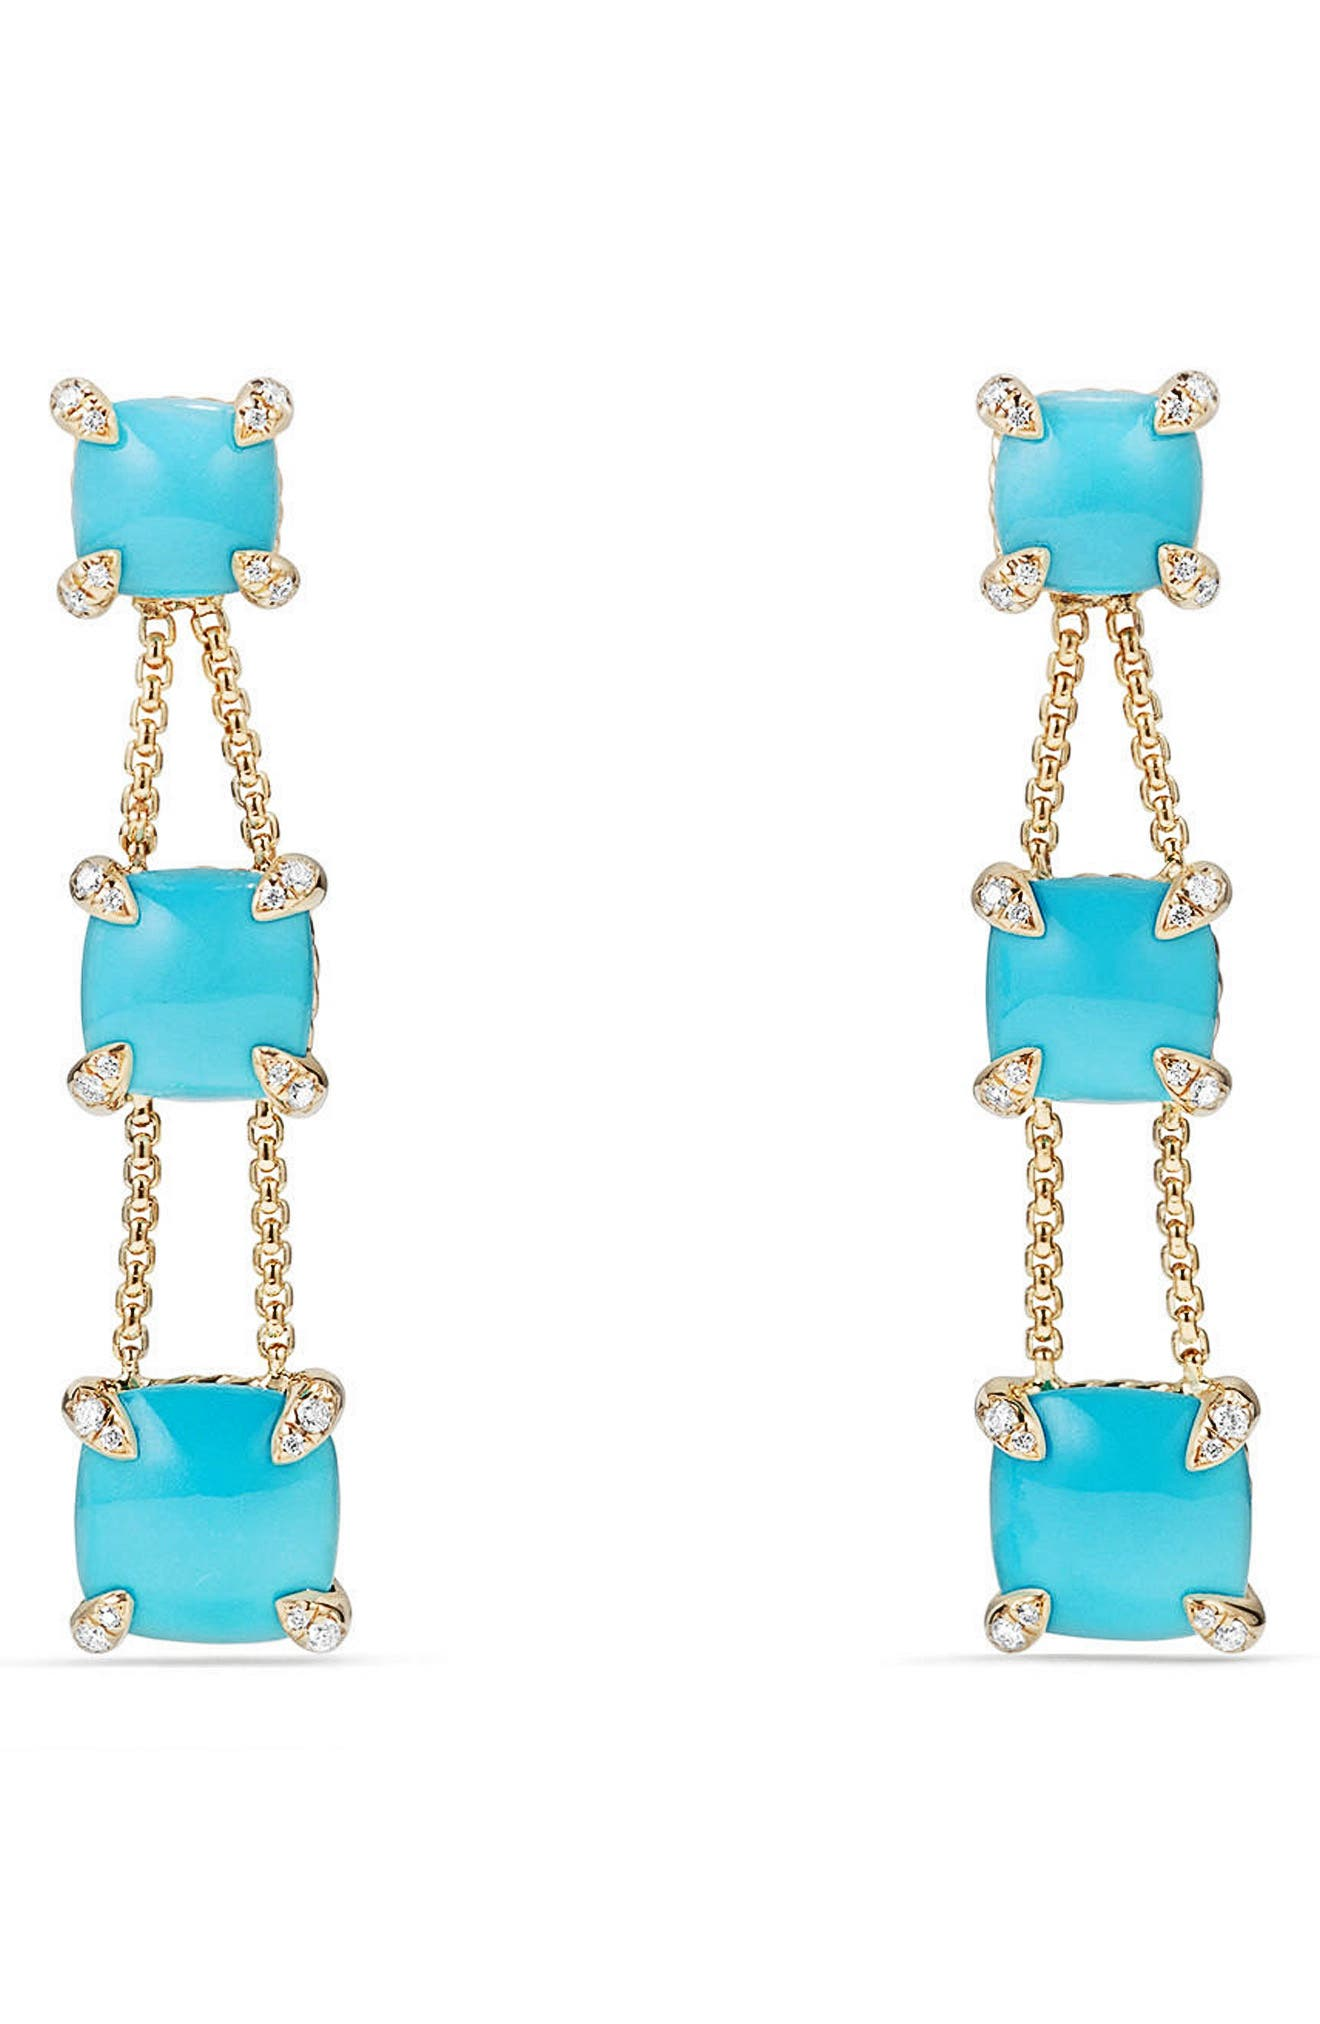 DAVID YURMAN Châtelaine Linear Chain Earrings in 18K Gold with Semiprecious Stone and Diamonds, Main, color, 445